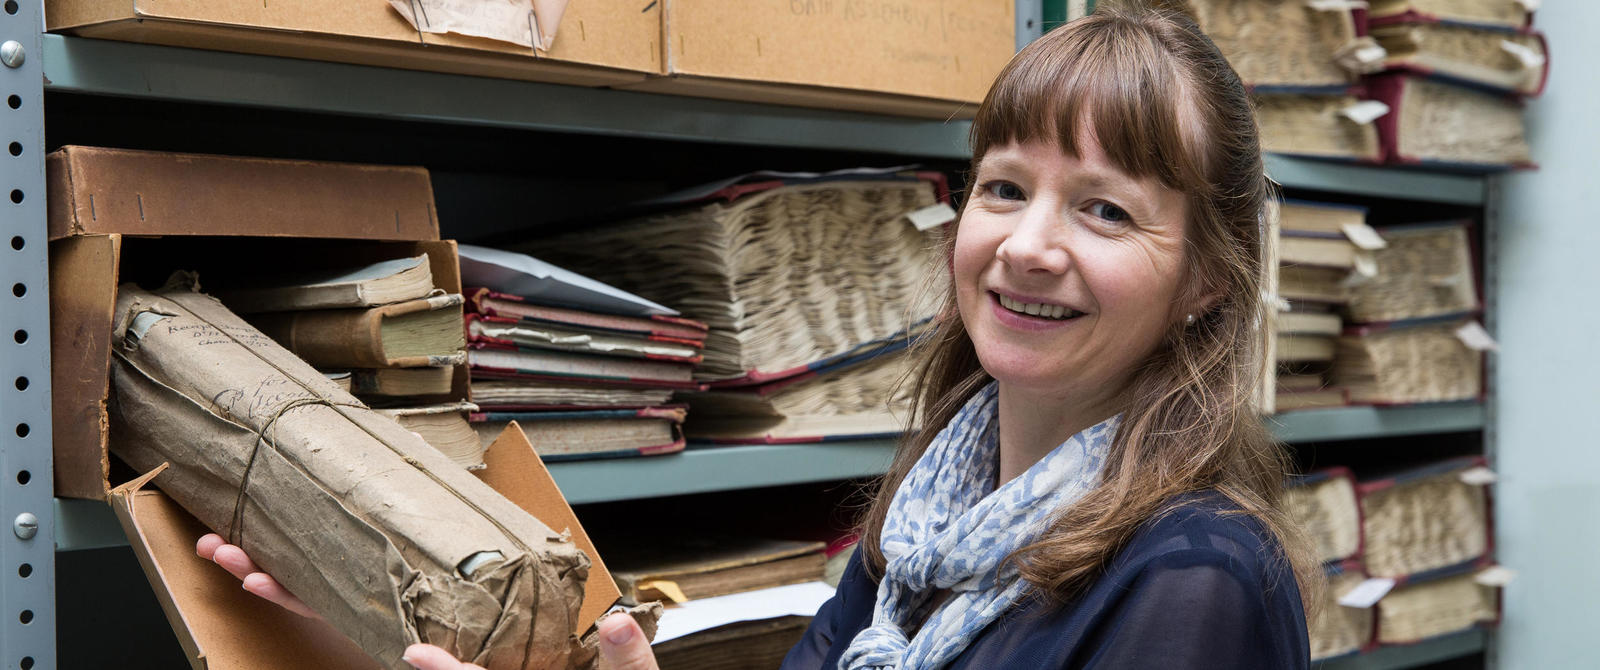 Image: Photograph of an archivist in a strongroom